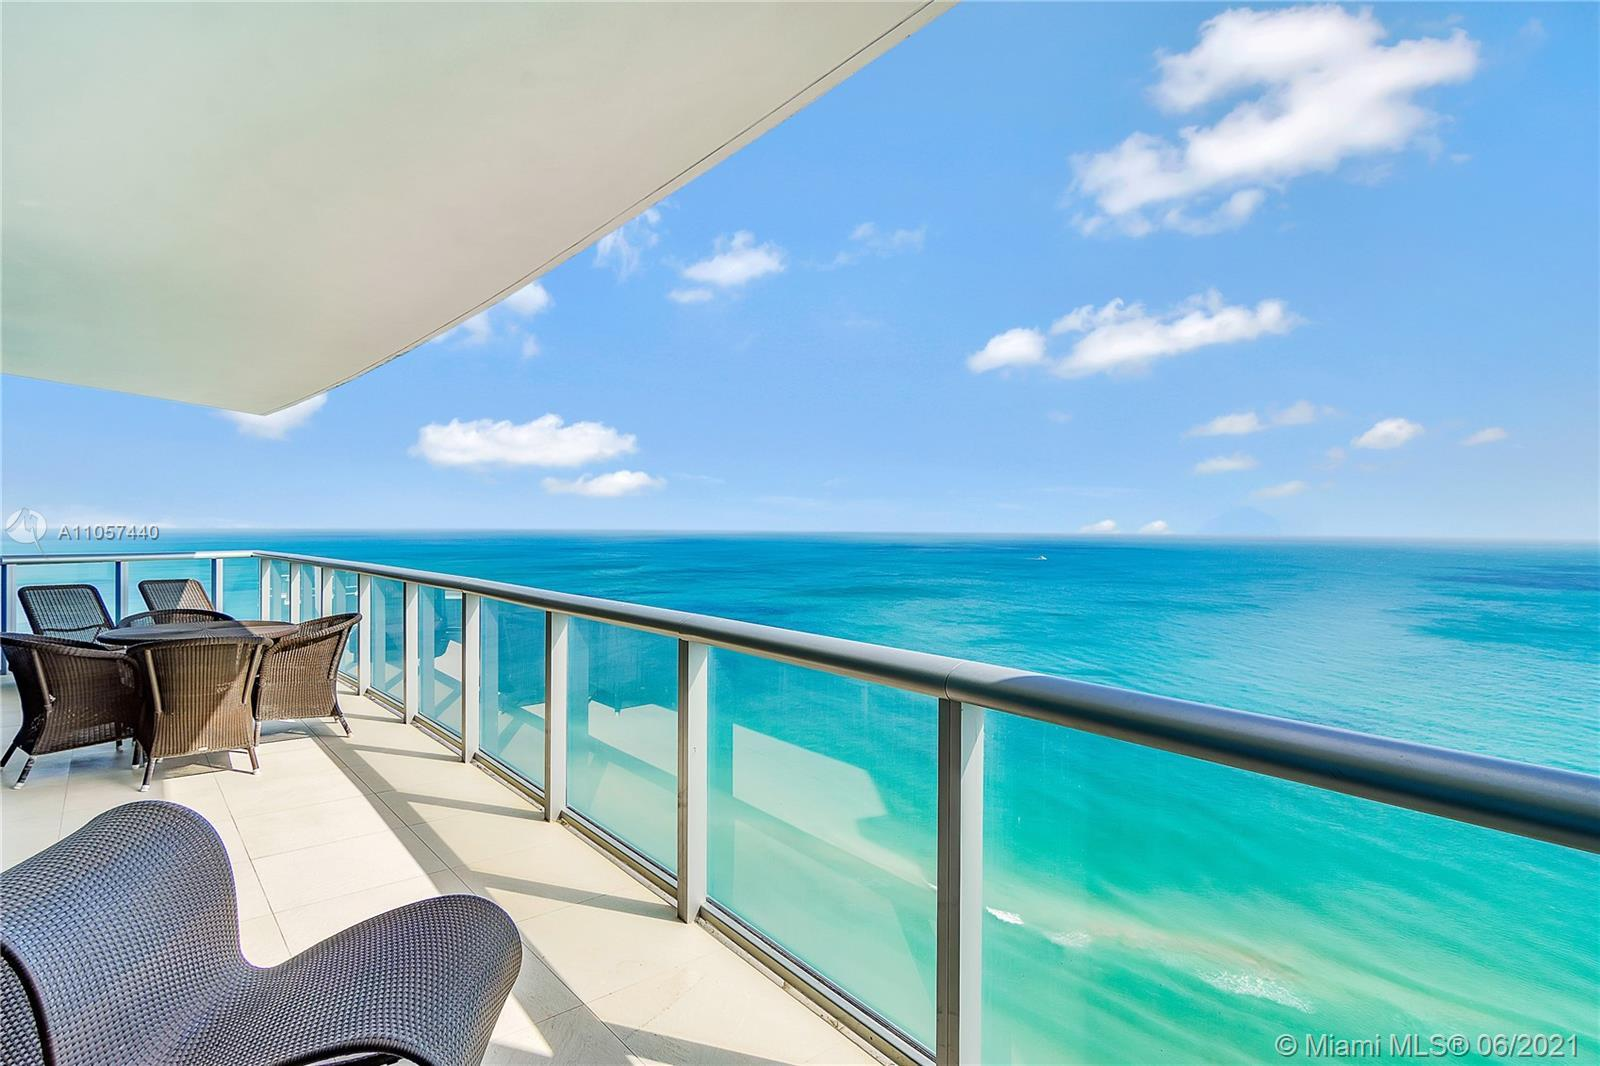 Welcome to this fabulous, beautifully furnished 2bed+den/3full bath residence in the sky, just under